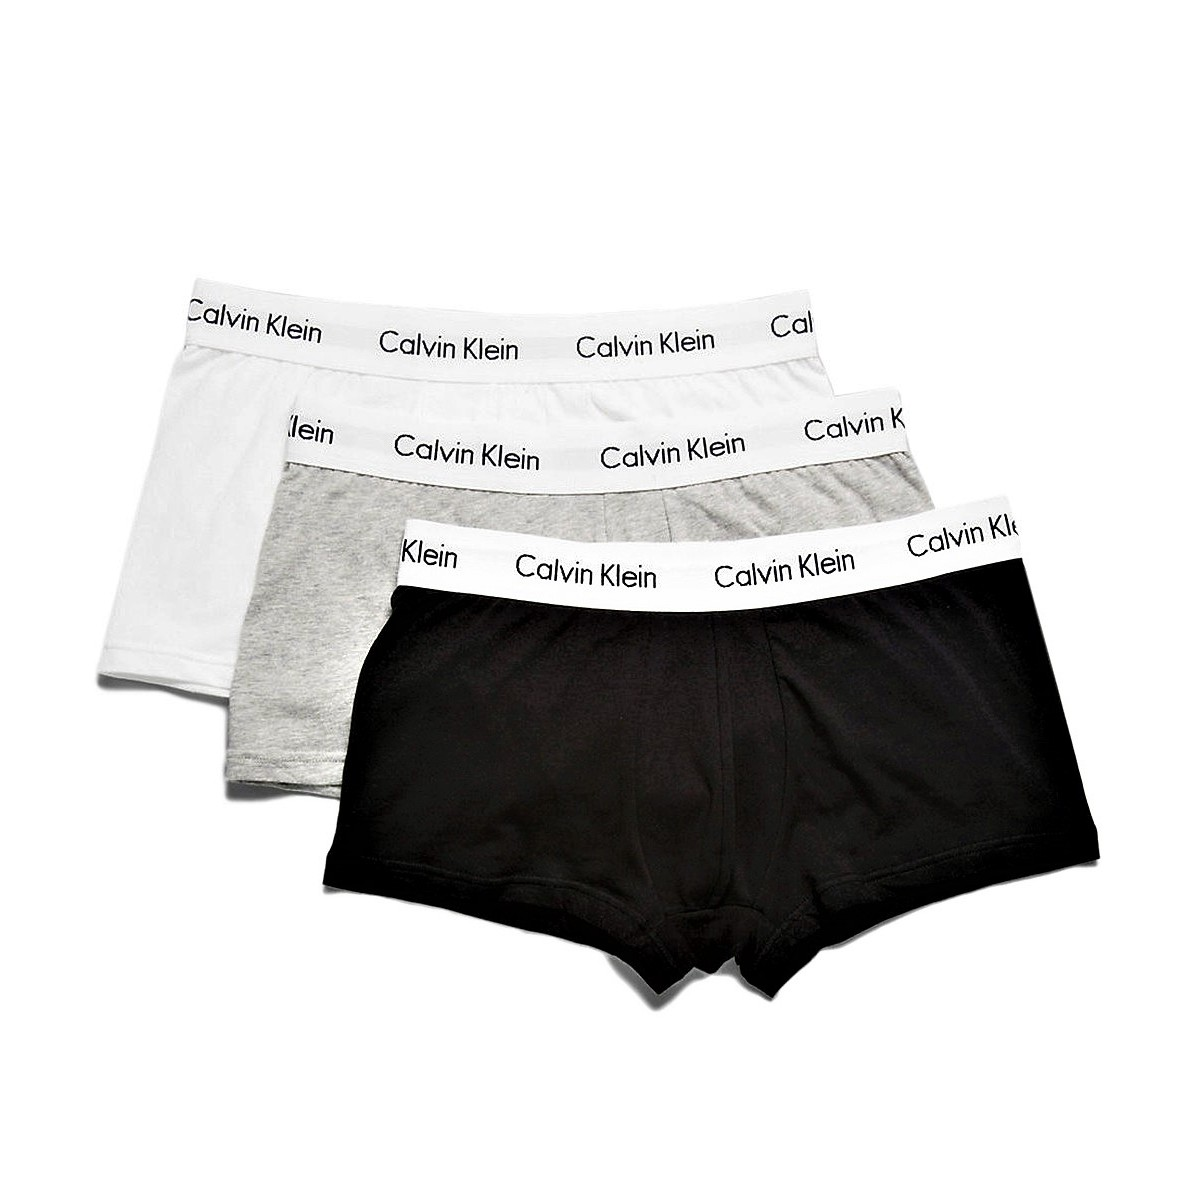 CALVIN KLEIN UNDERWEAR LOW RISE 3 PACK-01